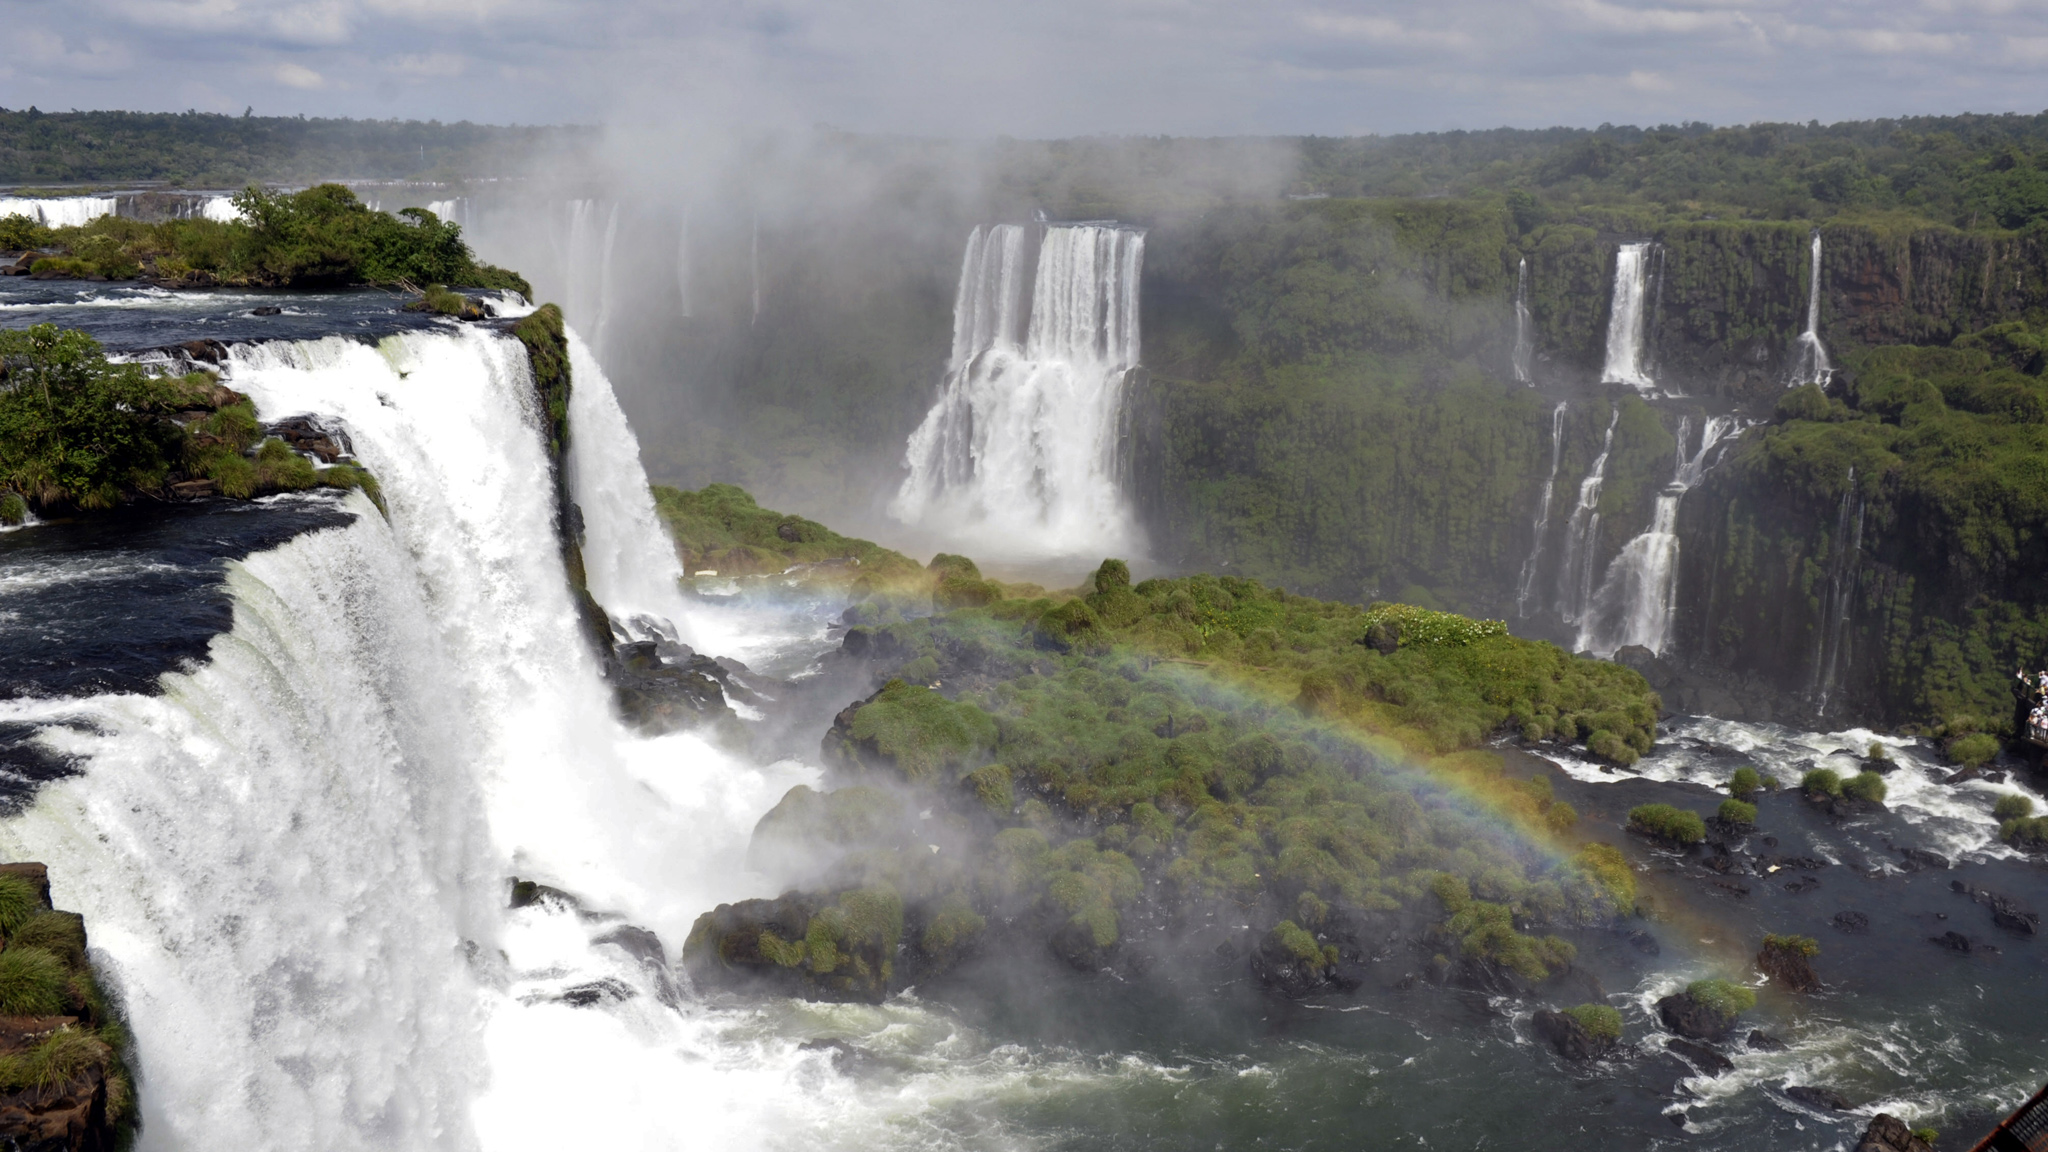 Brazil's Iguau Falls is one of the New Seven Wonders of Nature and will act as the backdrop to X Games Vert this week.